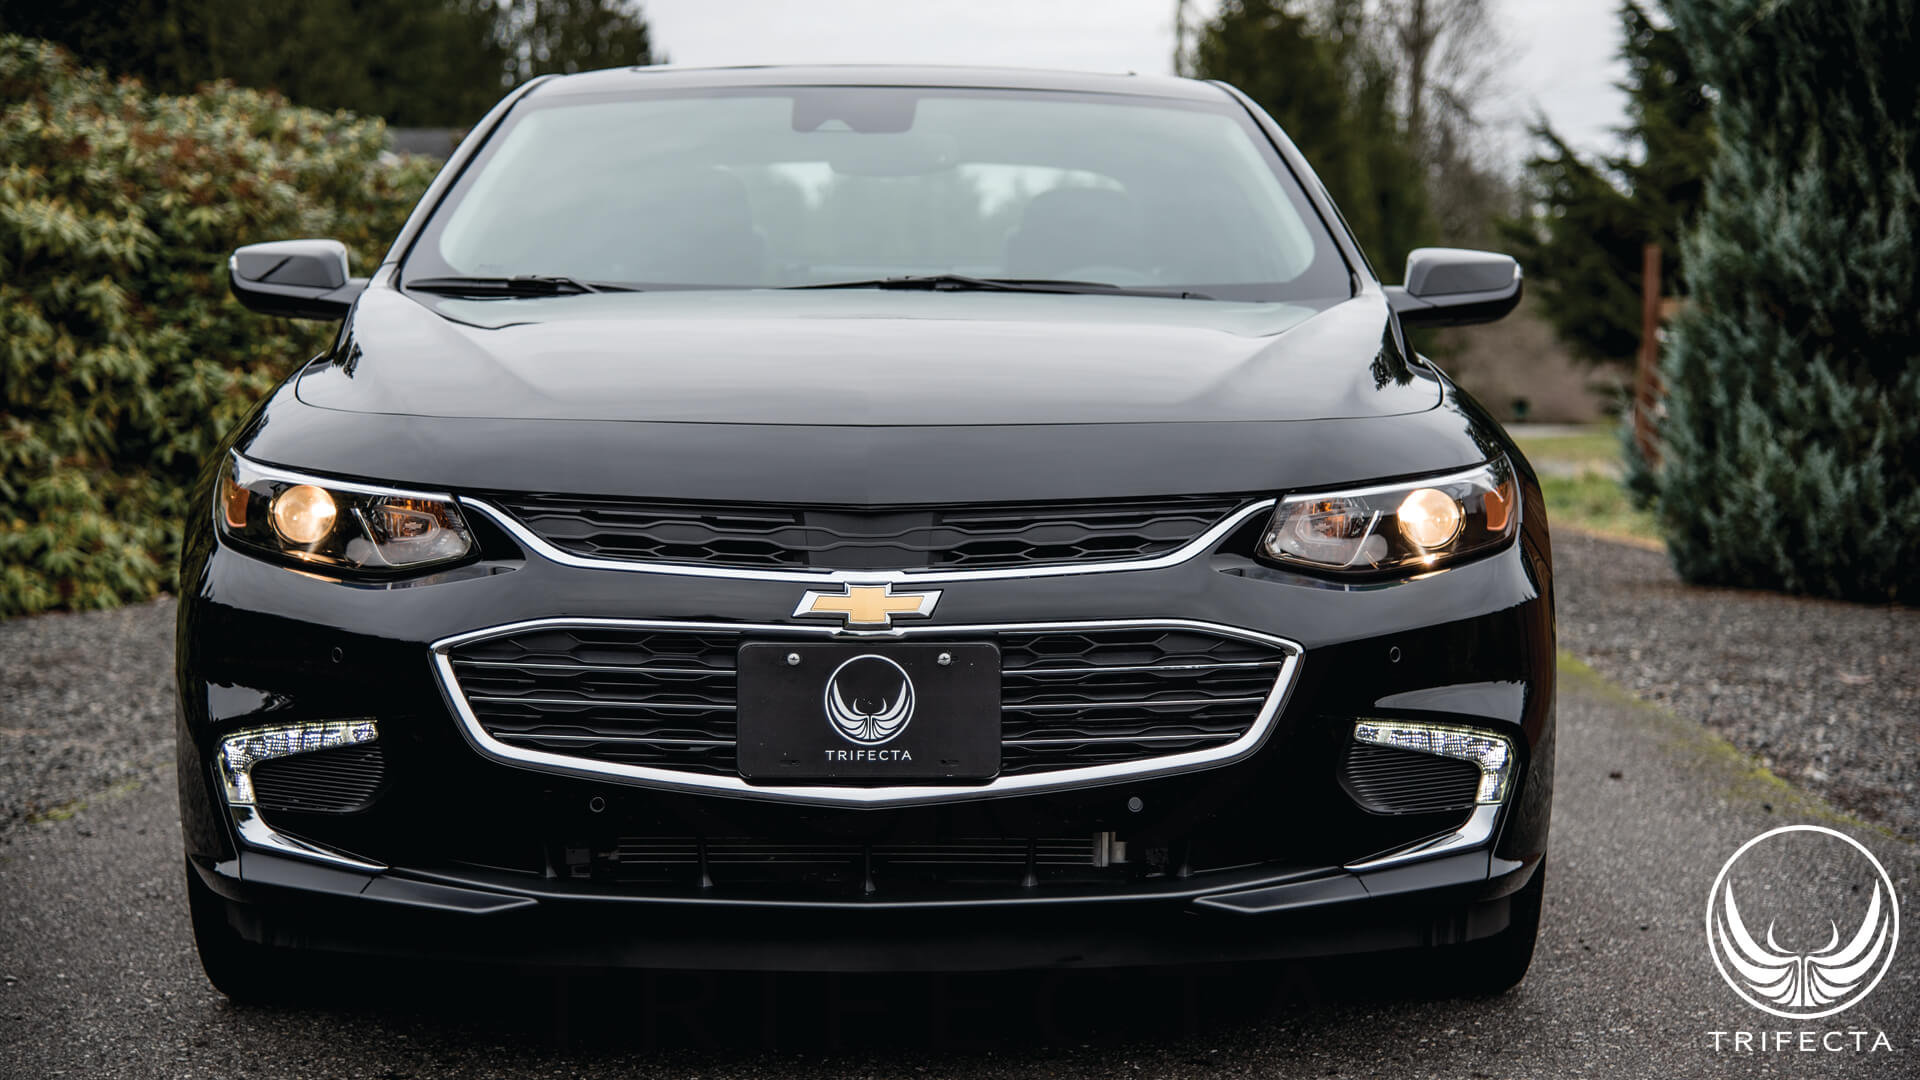 Product Review: 2016--2020 Chevrolet Malibu - 2.0L Turbo - Elite